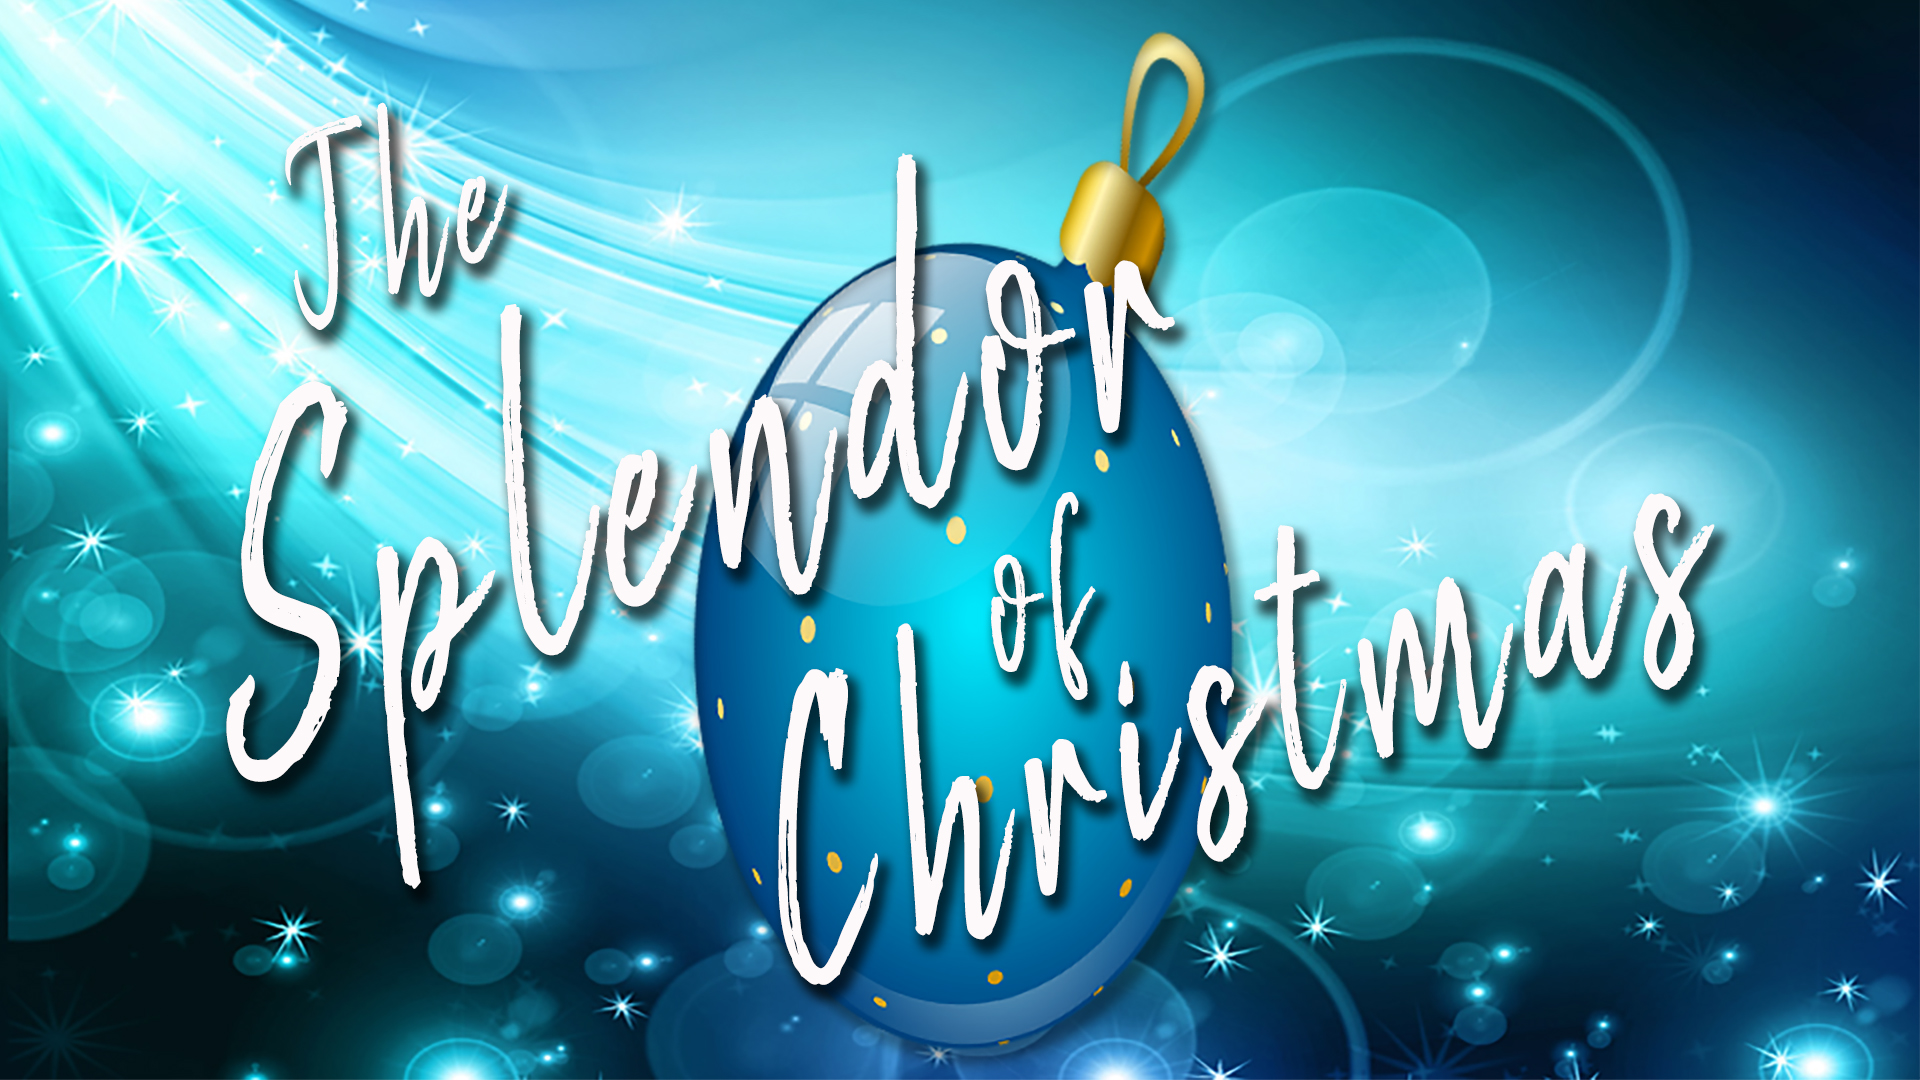 The Splendor of Christmas